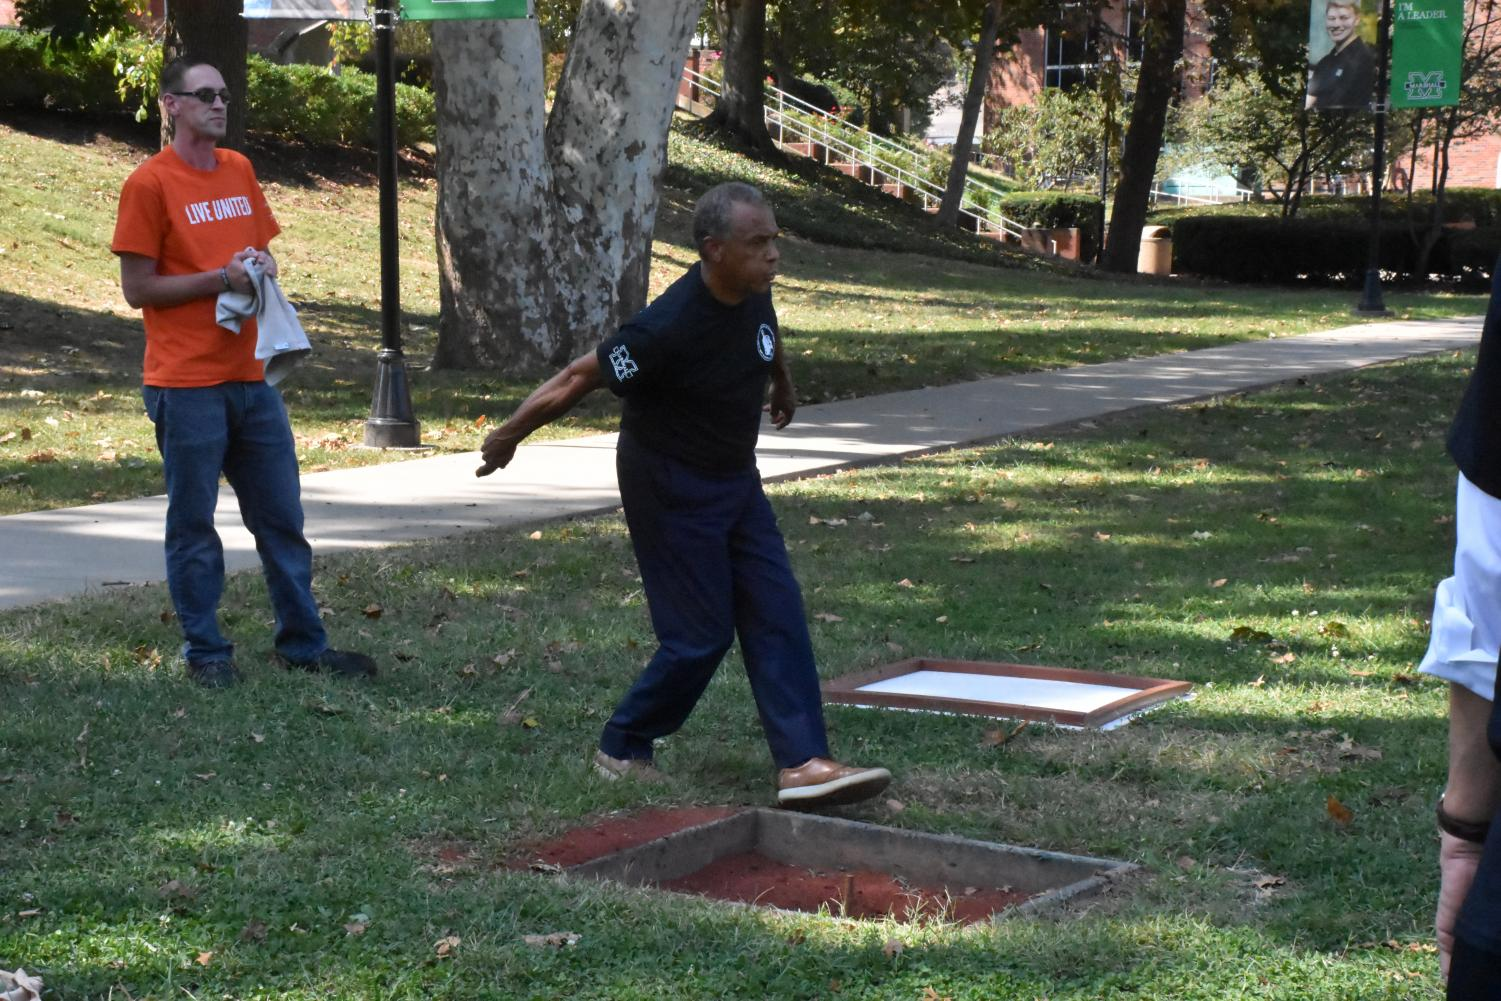 Interim Vice President for Student Affairs and Associate Vice President of Intercultural Affairs Maurice Cooley plays Quoits on campus Friday, Sept. 20.